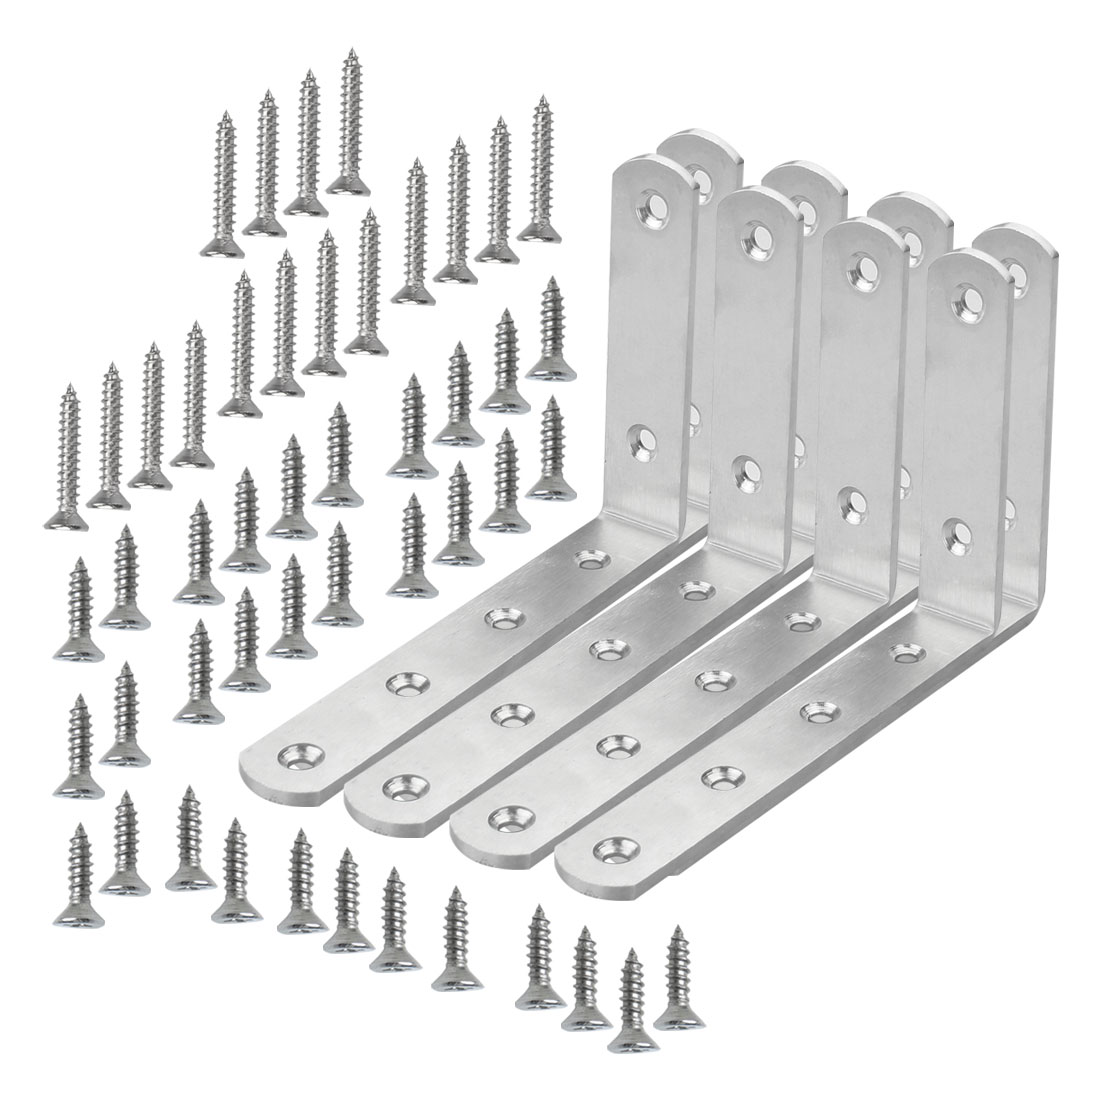 Angle Bracket Stainless Steel Brace Fastener Support w Screw 125 x 75mm, 8pcs